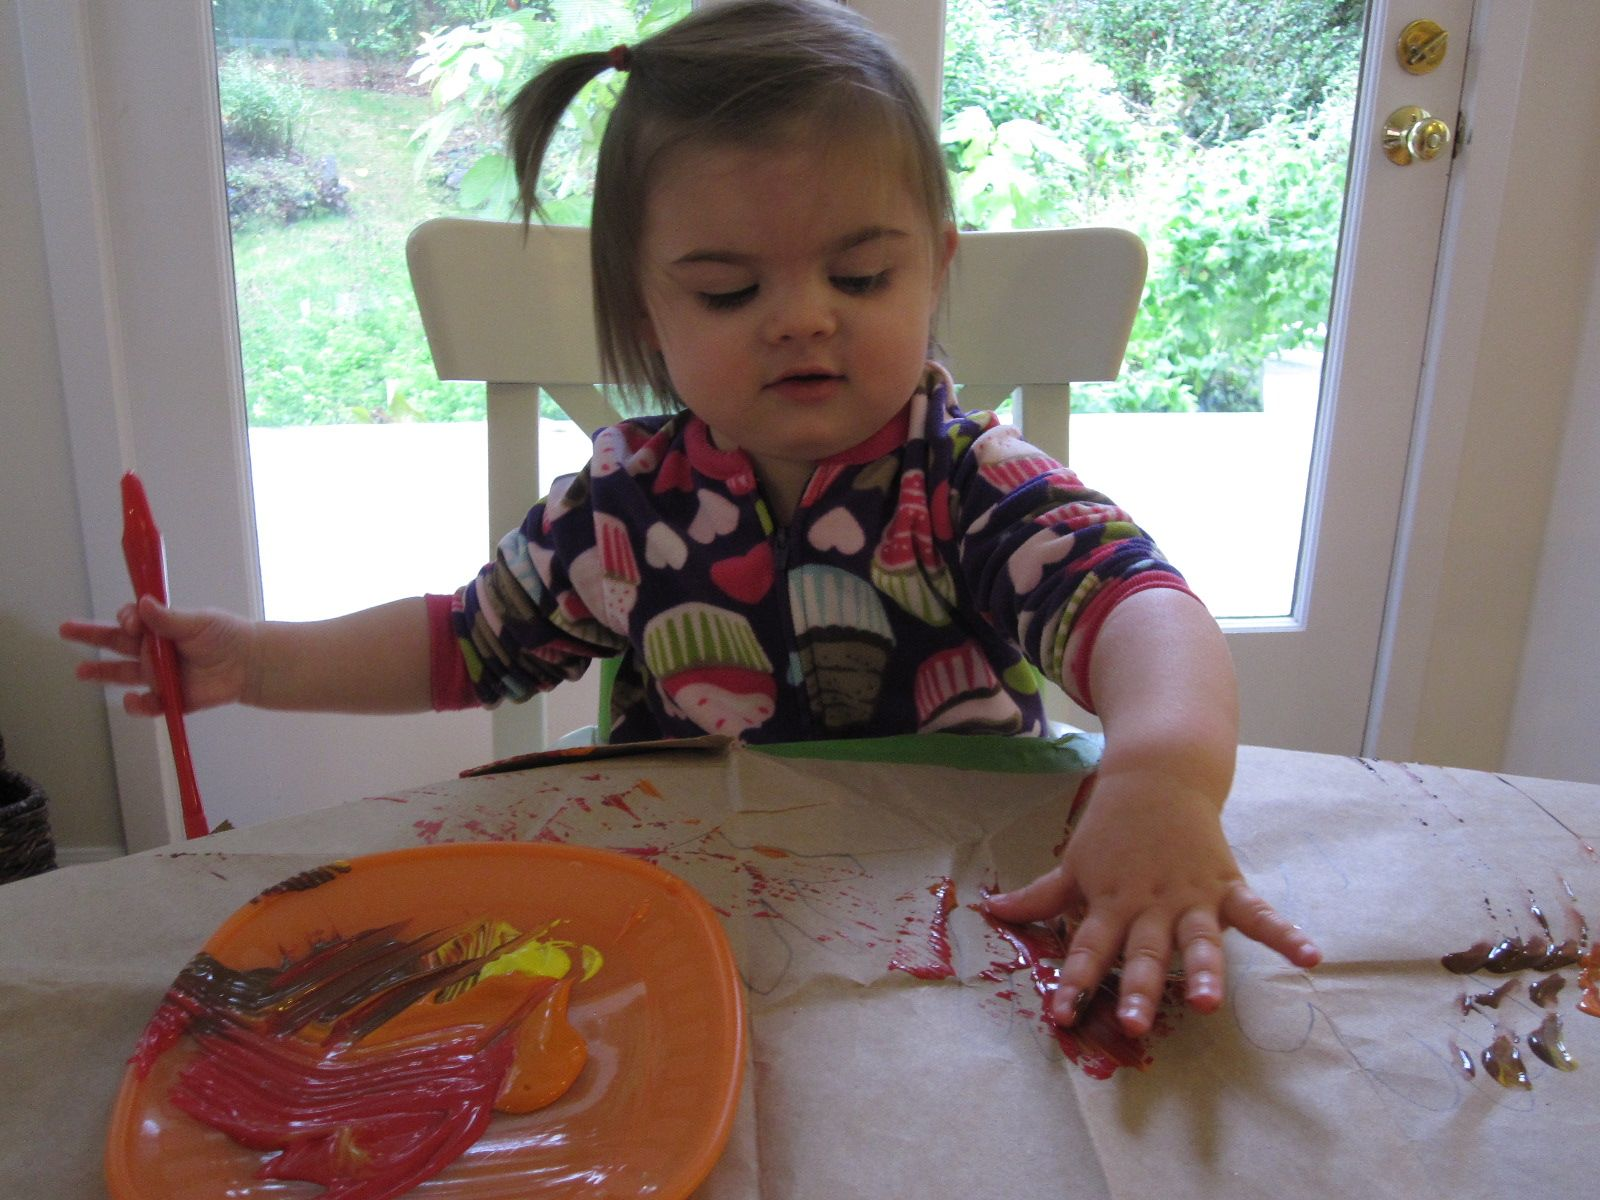 Handprint Turkey Craft for Toddlers #handprintturkey